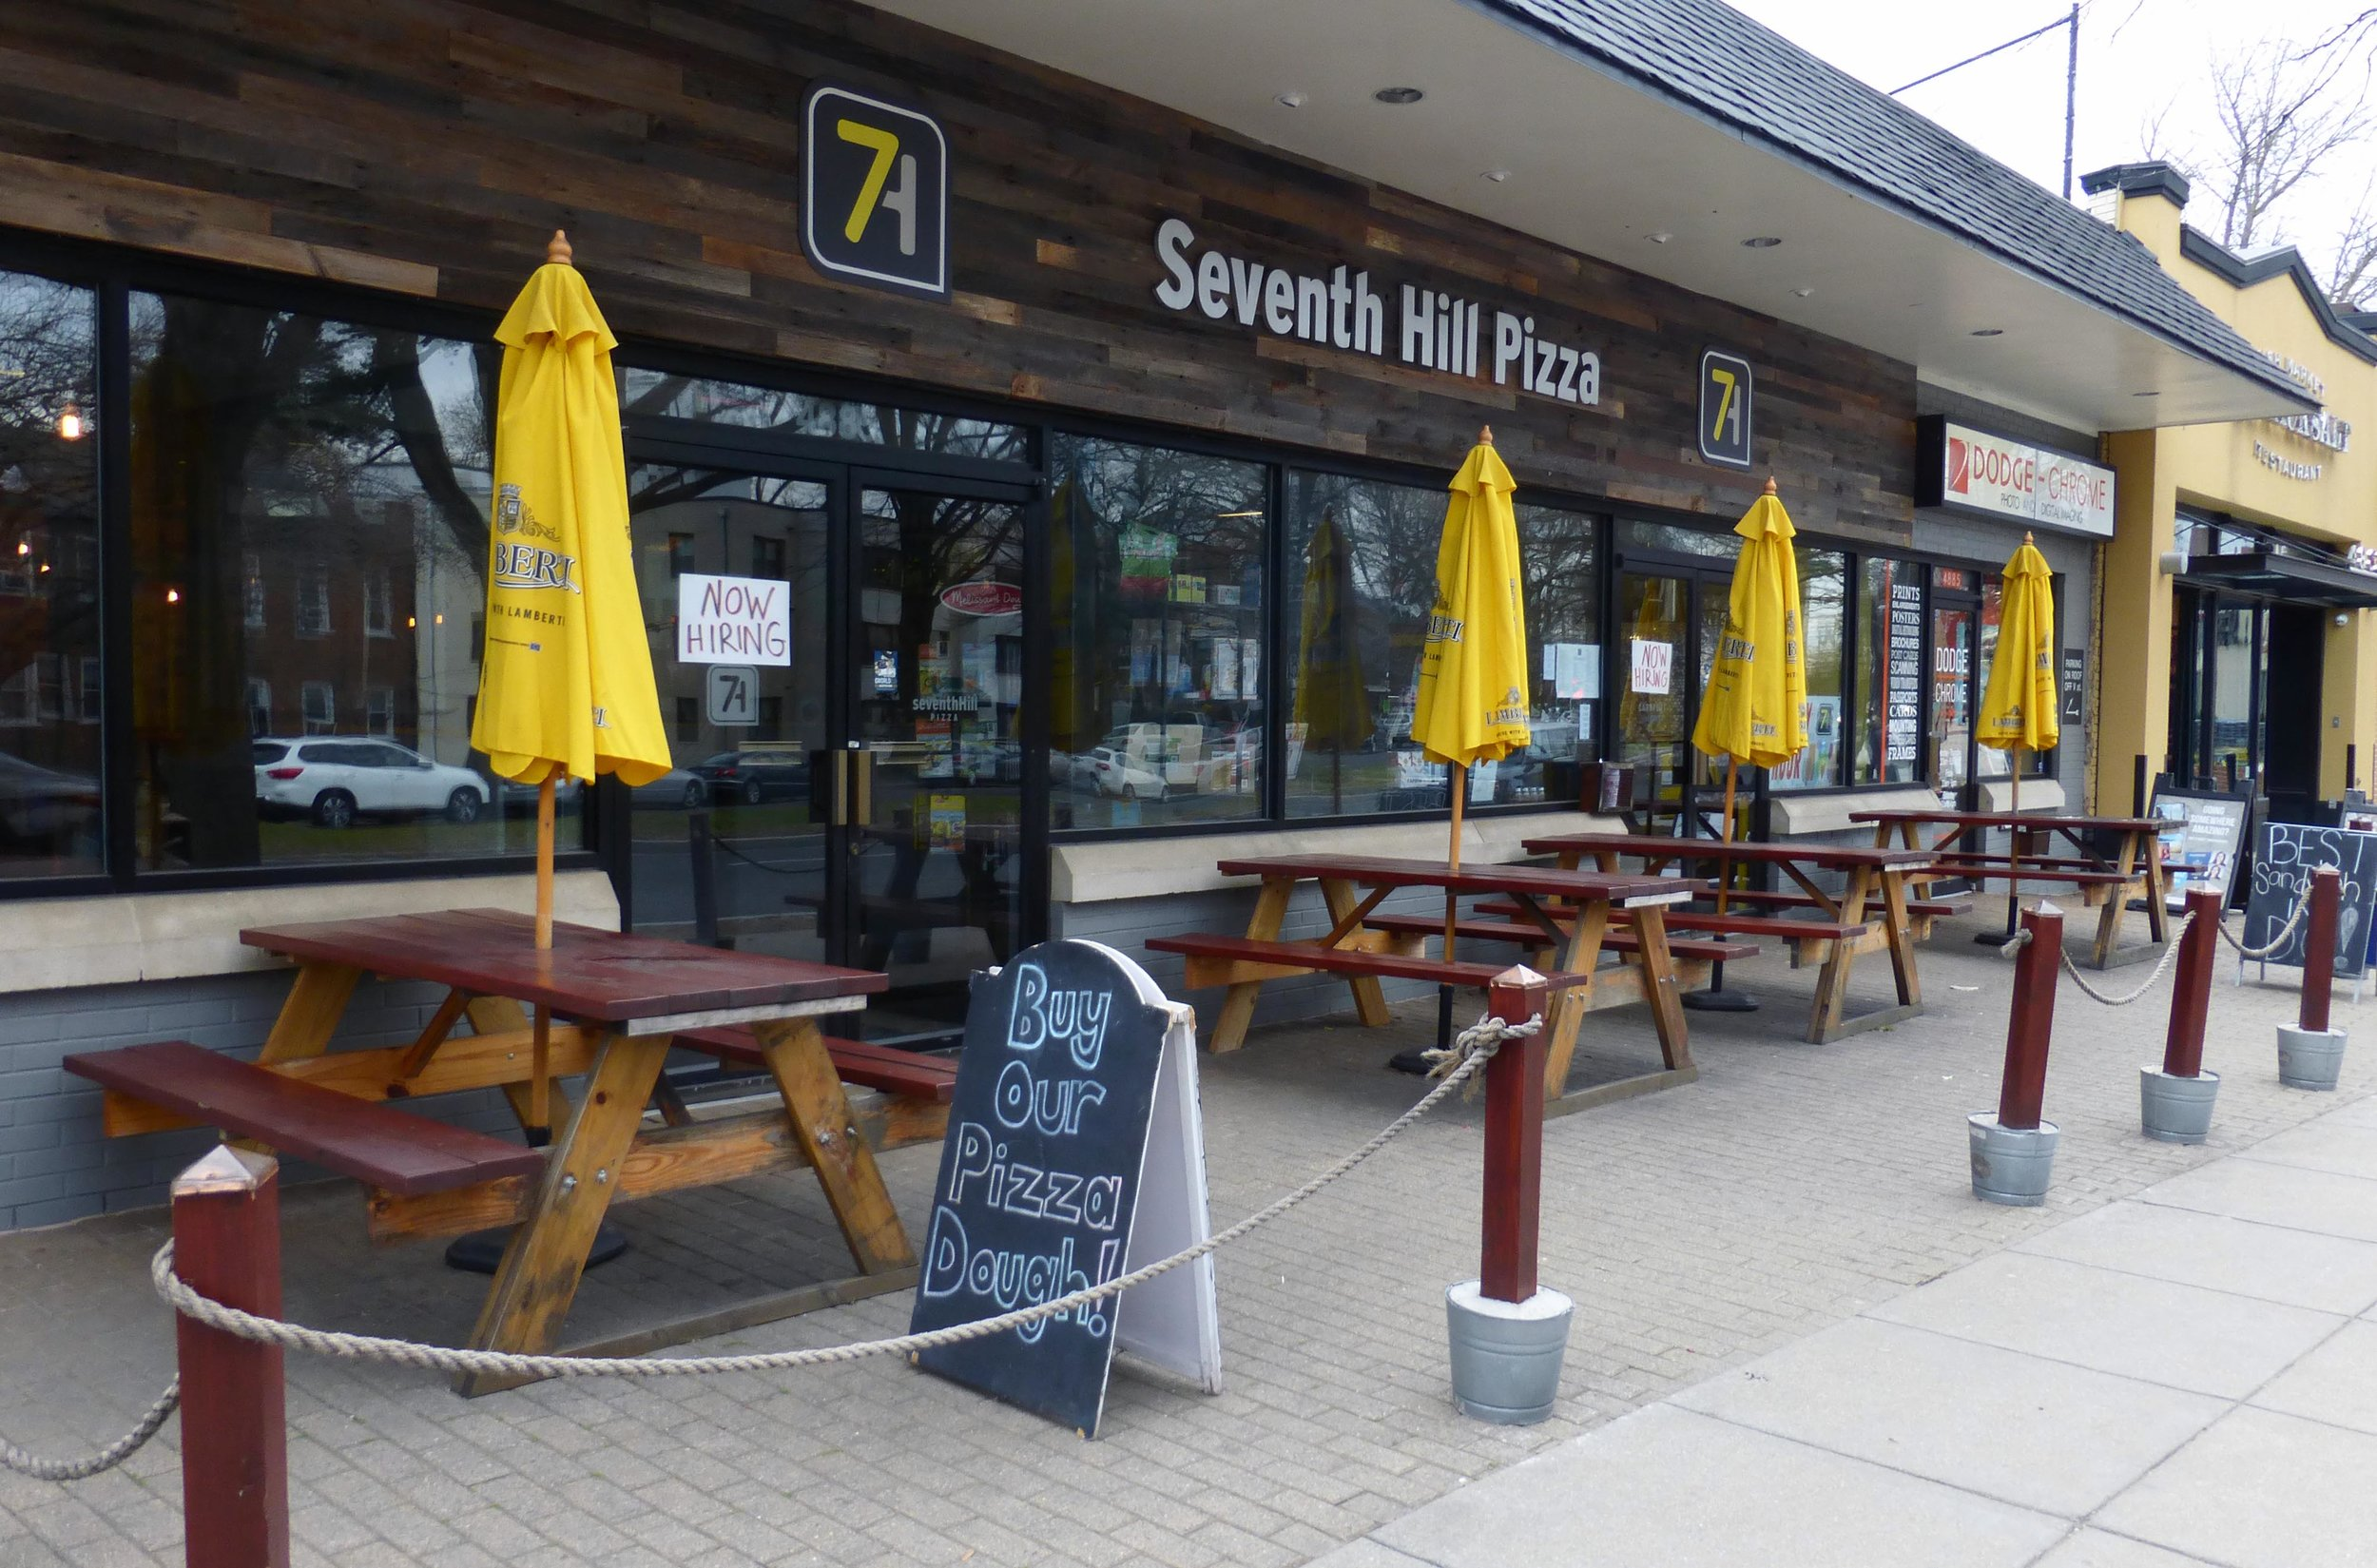 Located at 4885 MacArthur Boulevard NW, Seventh Hill Pizza offers dine-in, take-out, and full catering. Photos by Ann Carper.